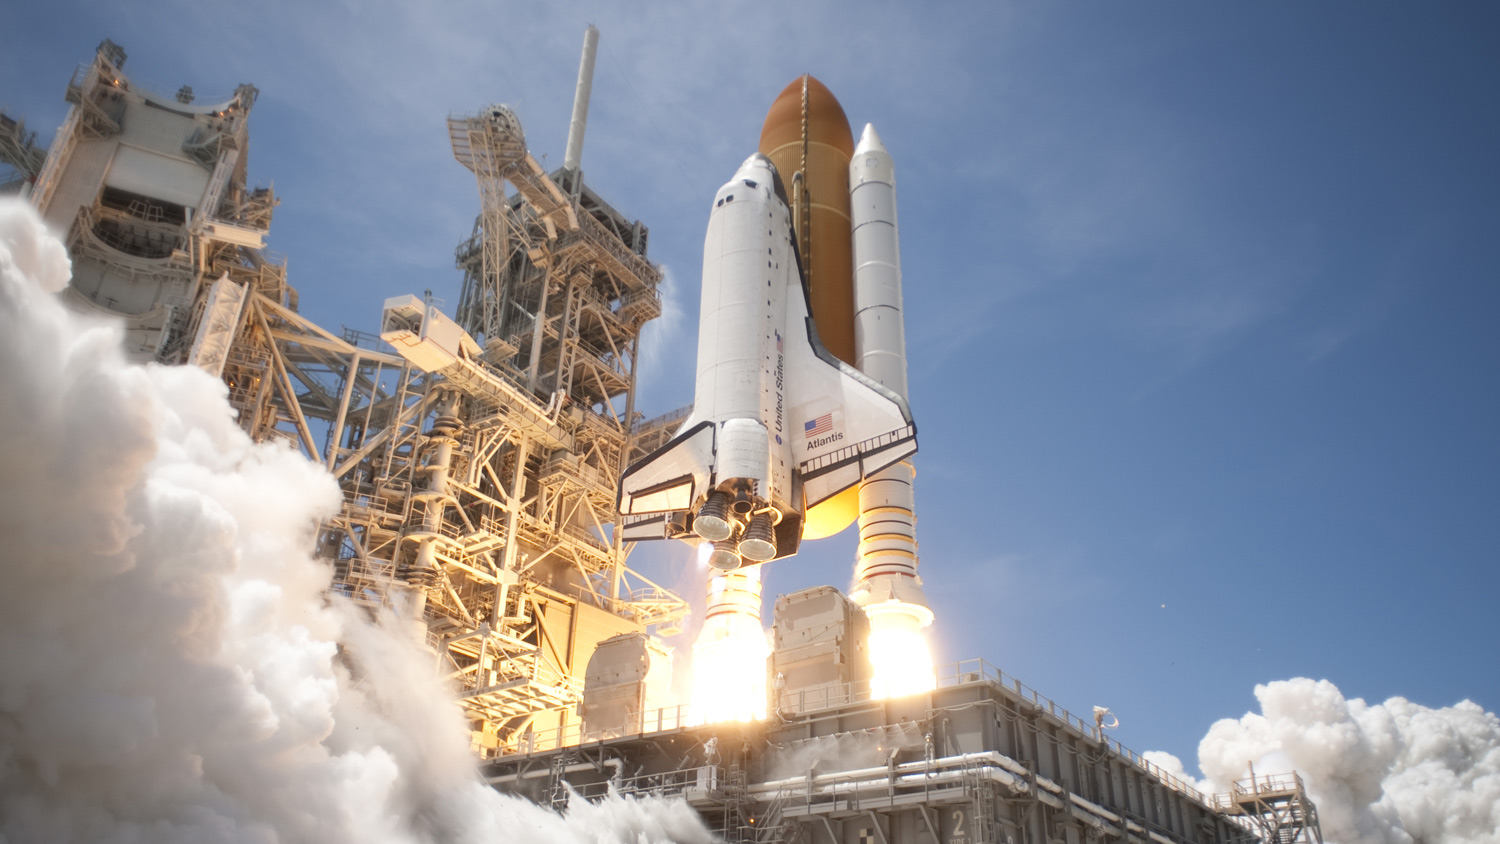 EP101_SpaceShuttleTriumphAndTragedy_04.jpg